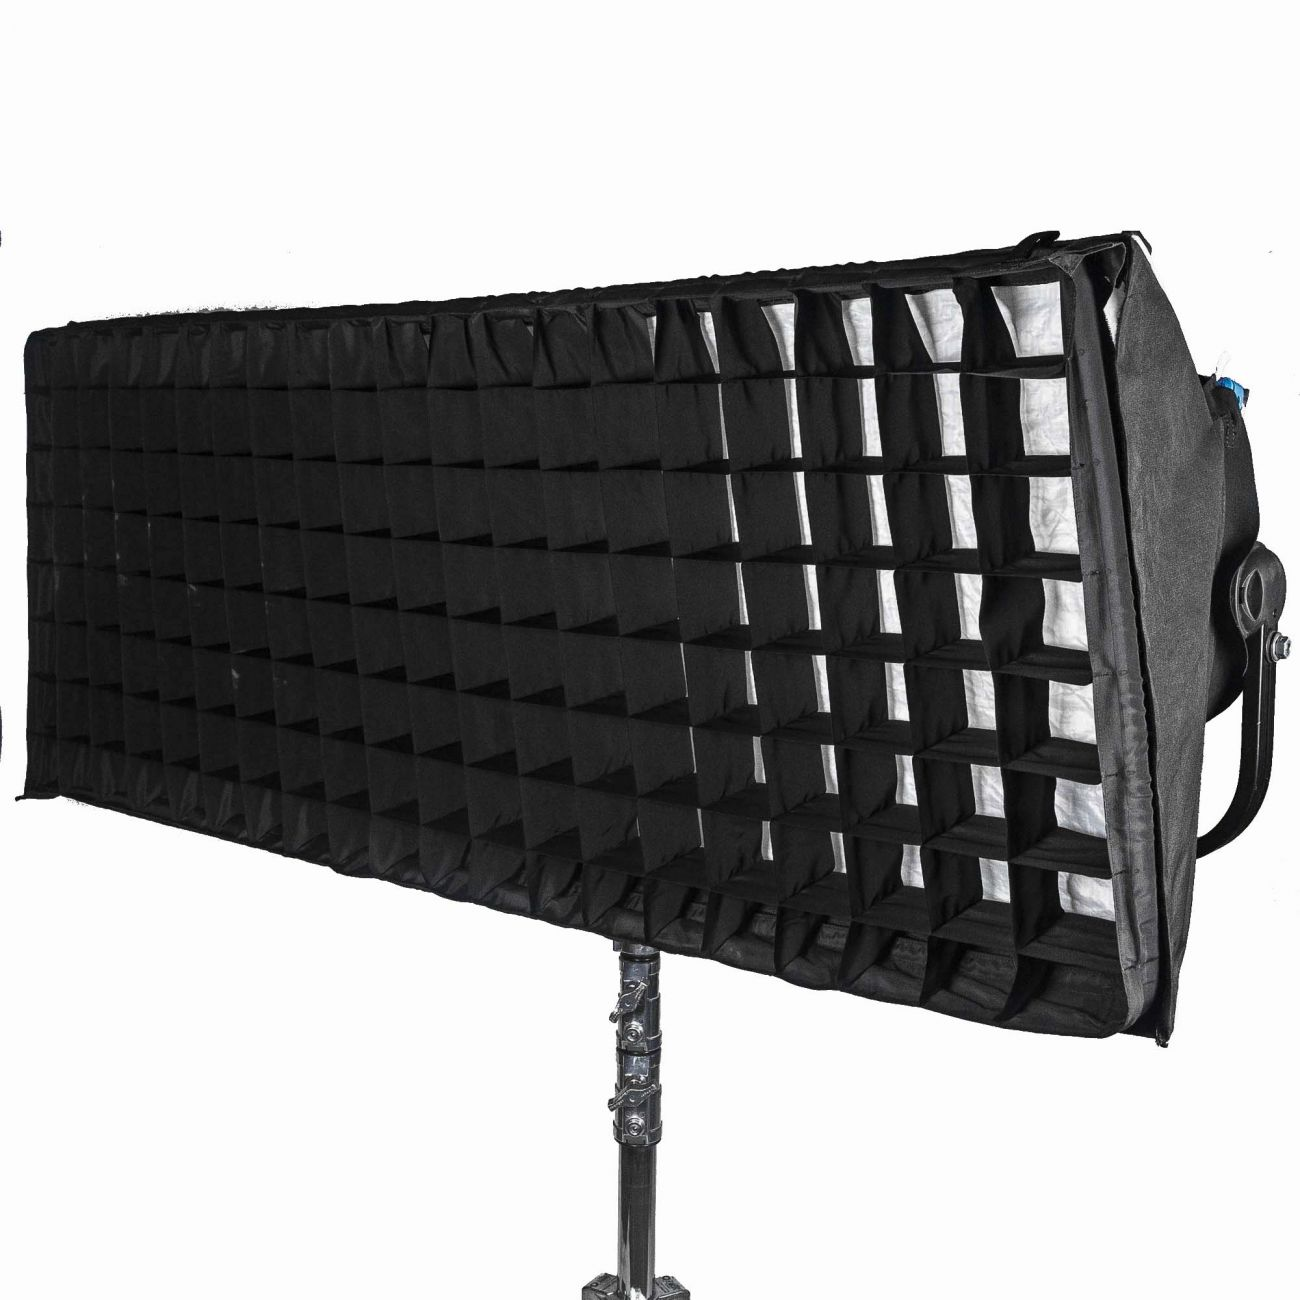 SnapGrid for Softbox SnapGrid S120